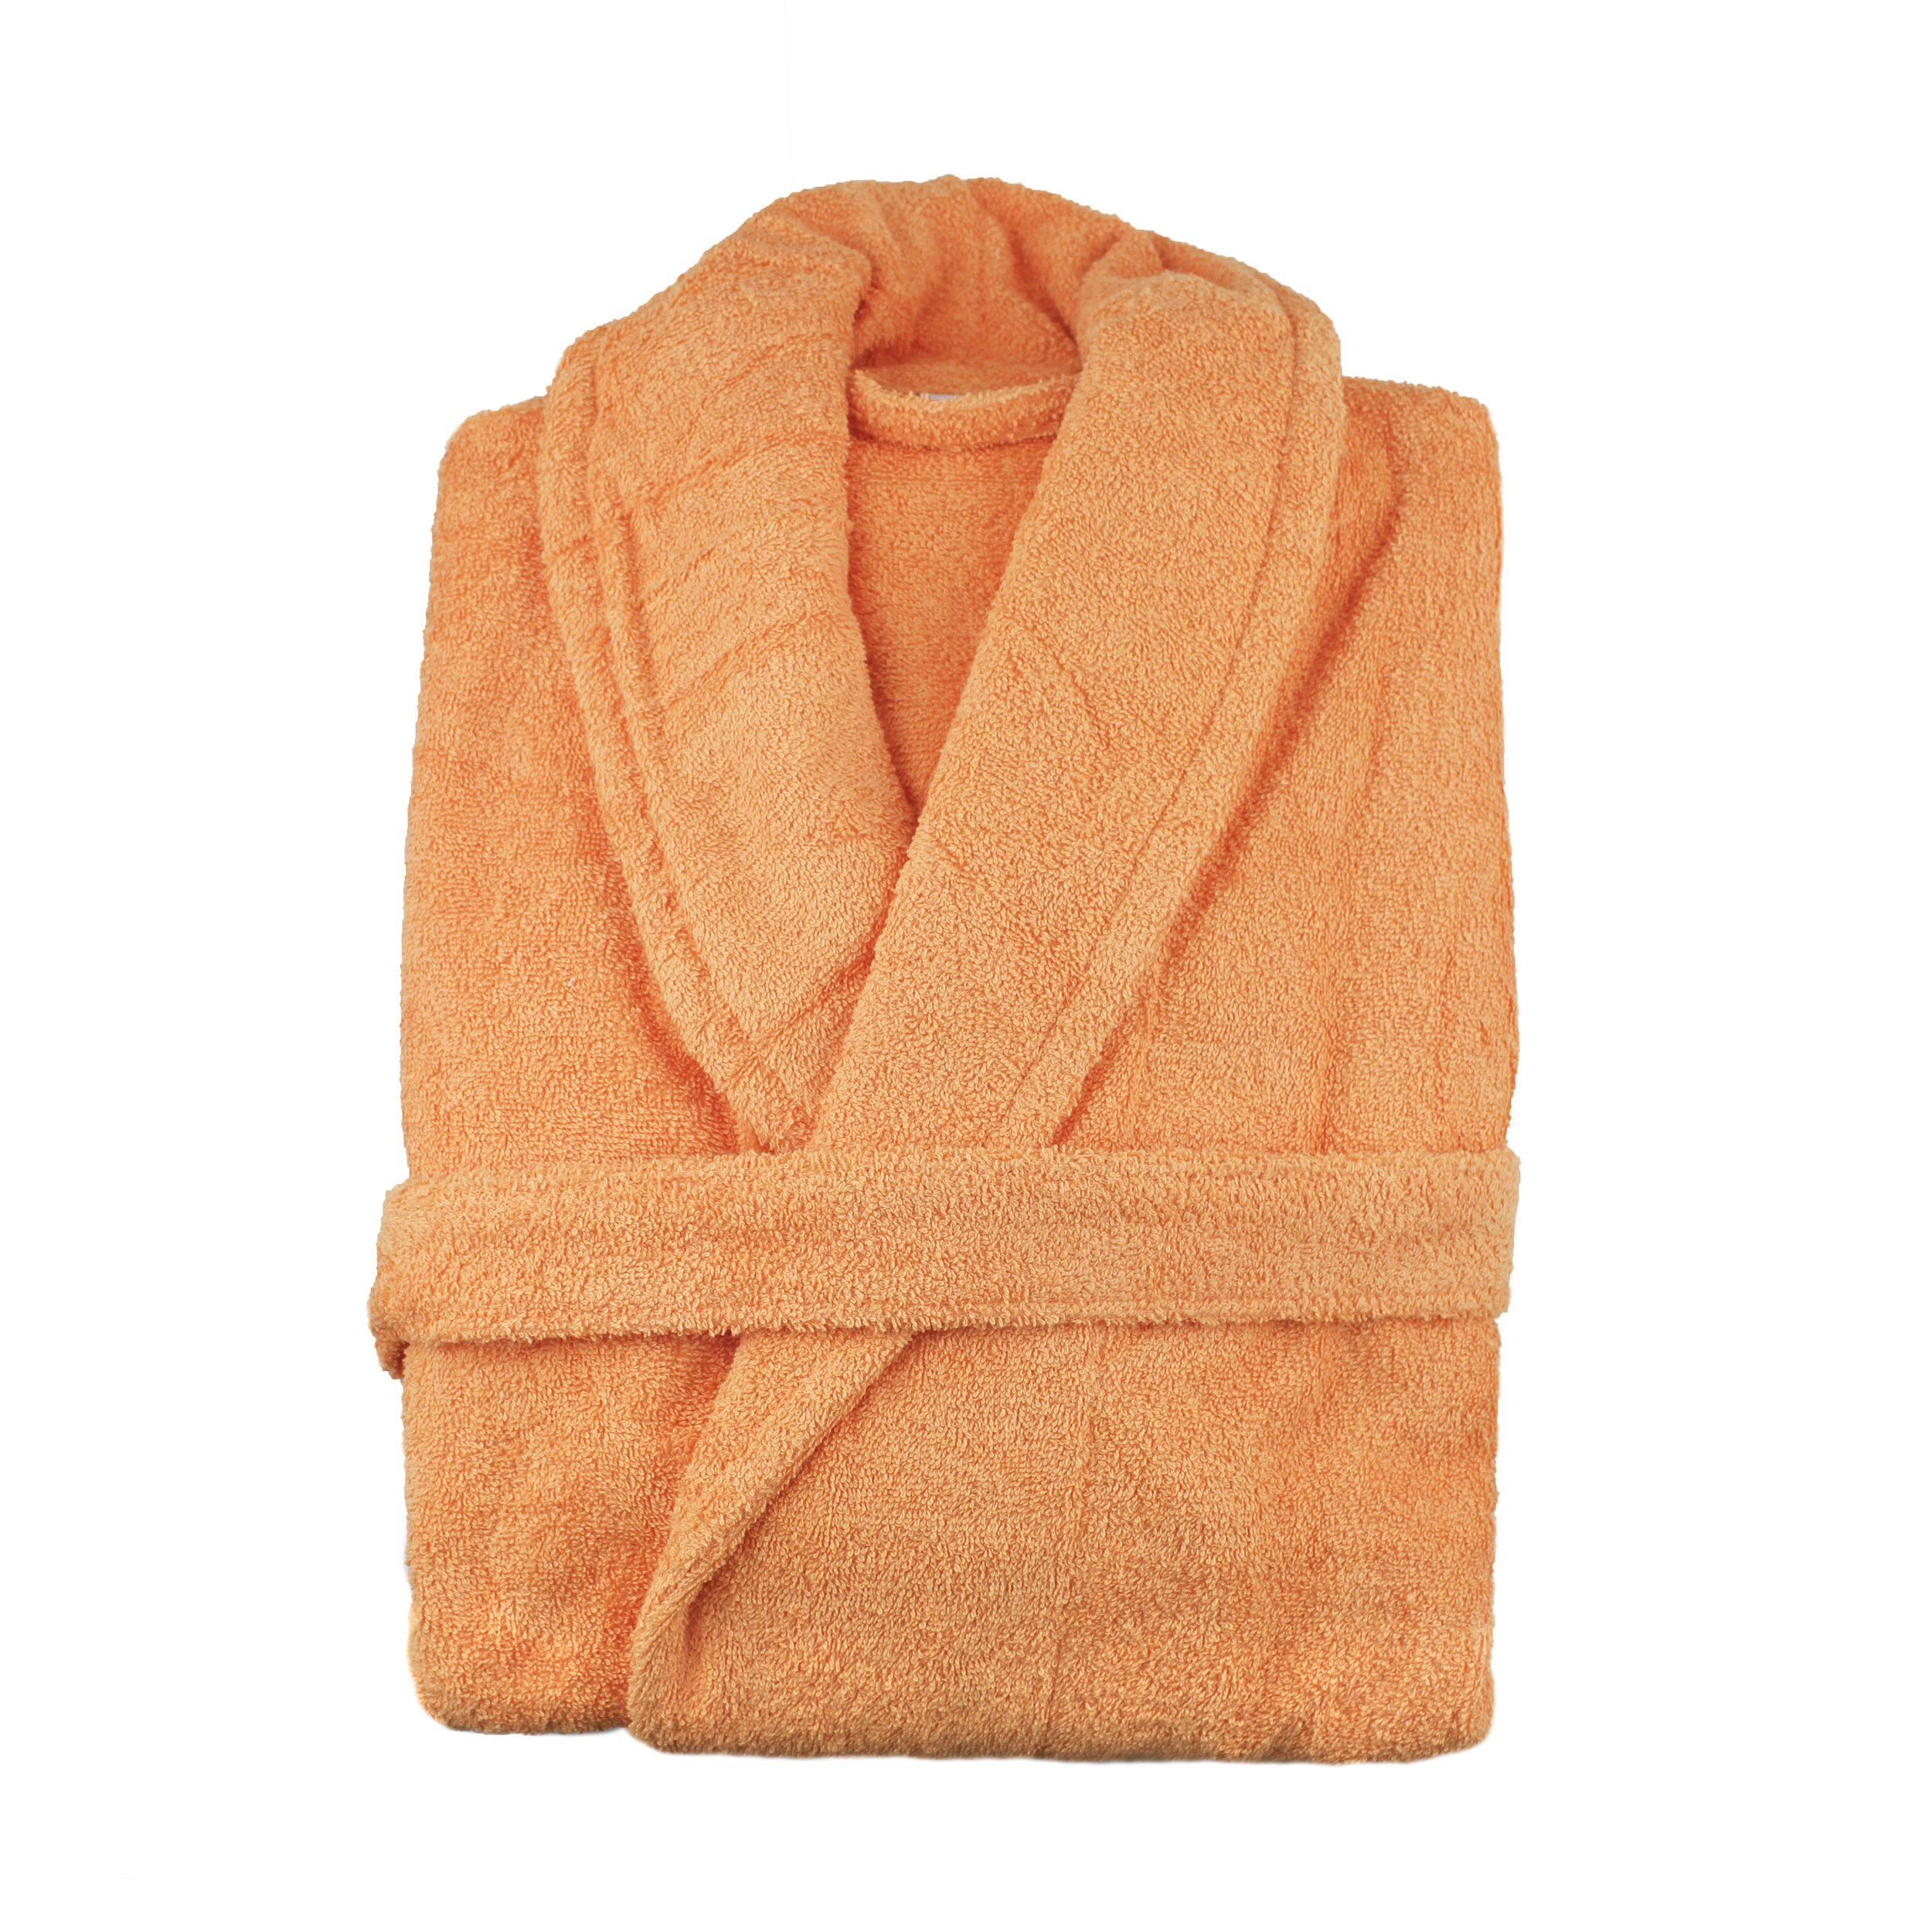 Turkish Bath Robe_Cantaloupe.jpg